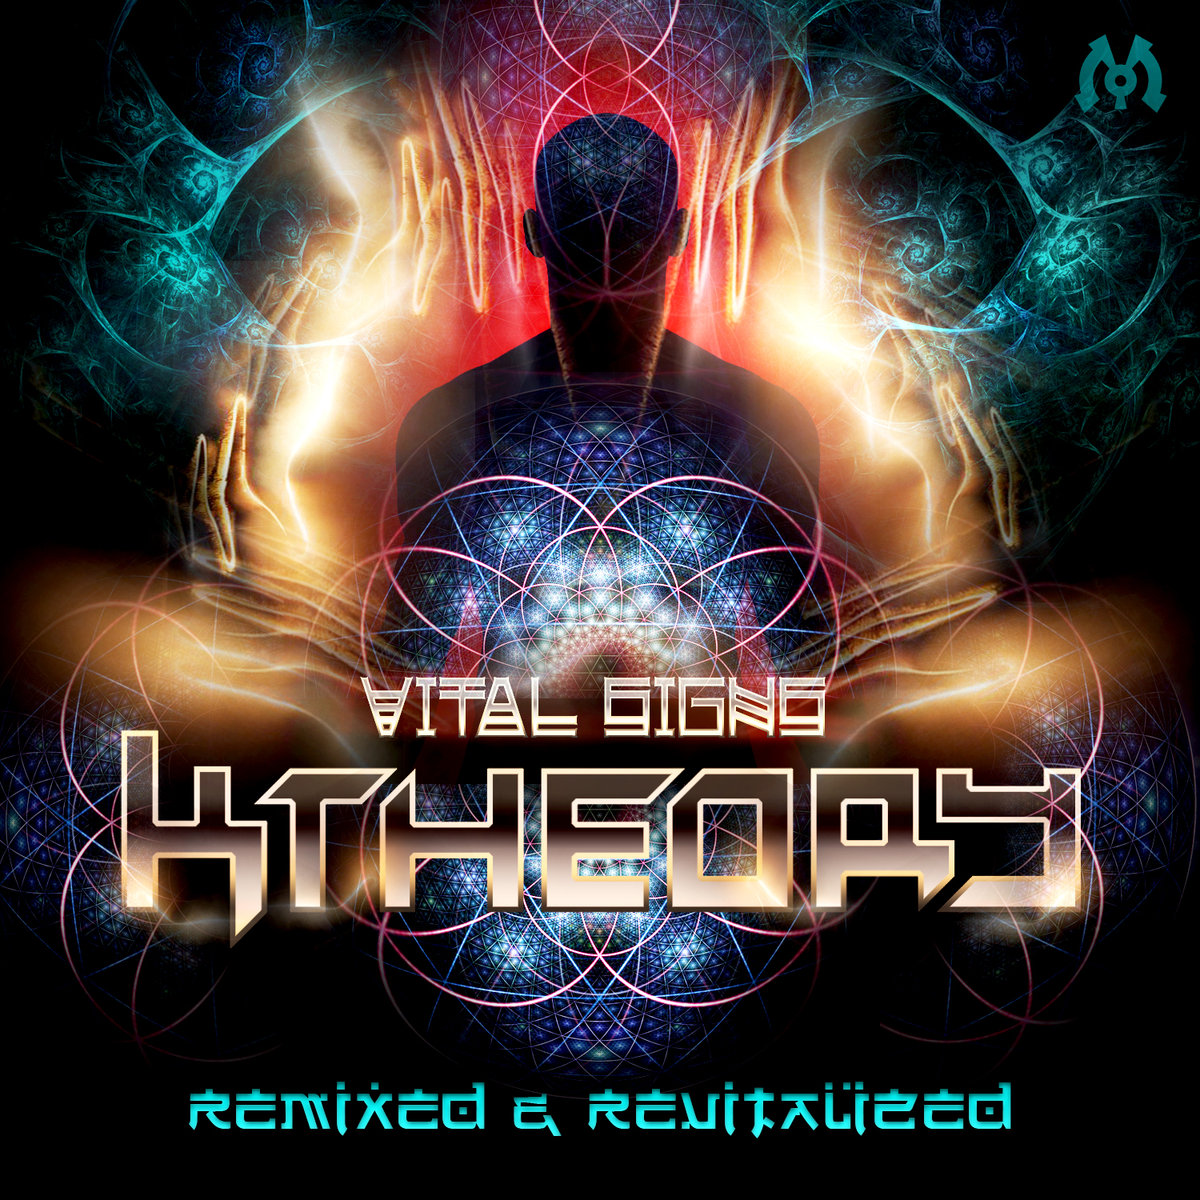 K Theory - Roll Out (Omega Remix) @ 'Vital Signs: Remixed and Revitalized' album (electronic, dubstep)